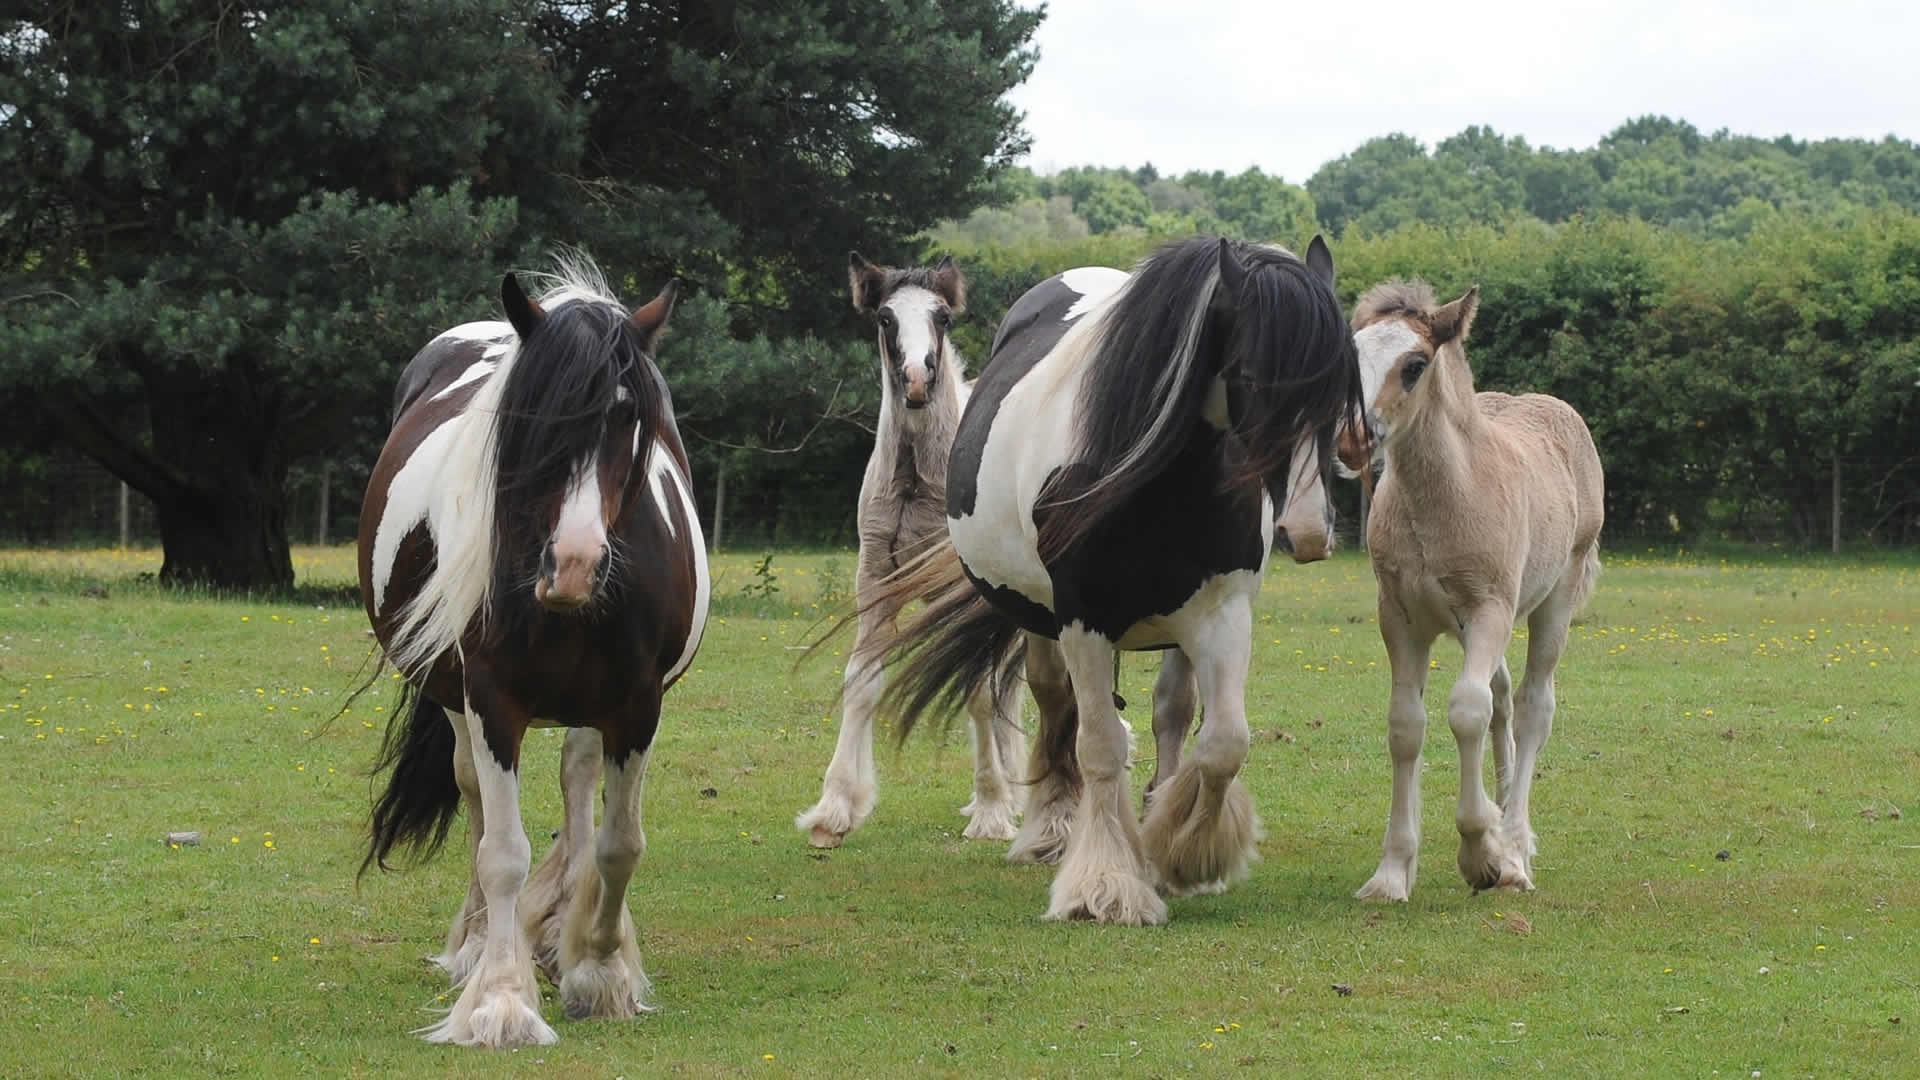 Our local horses